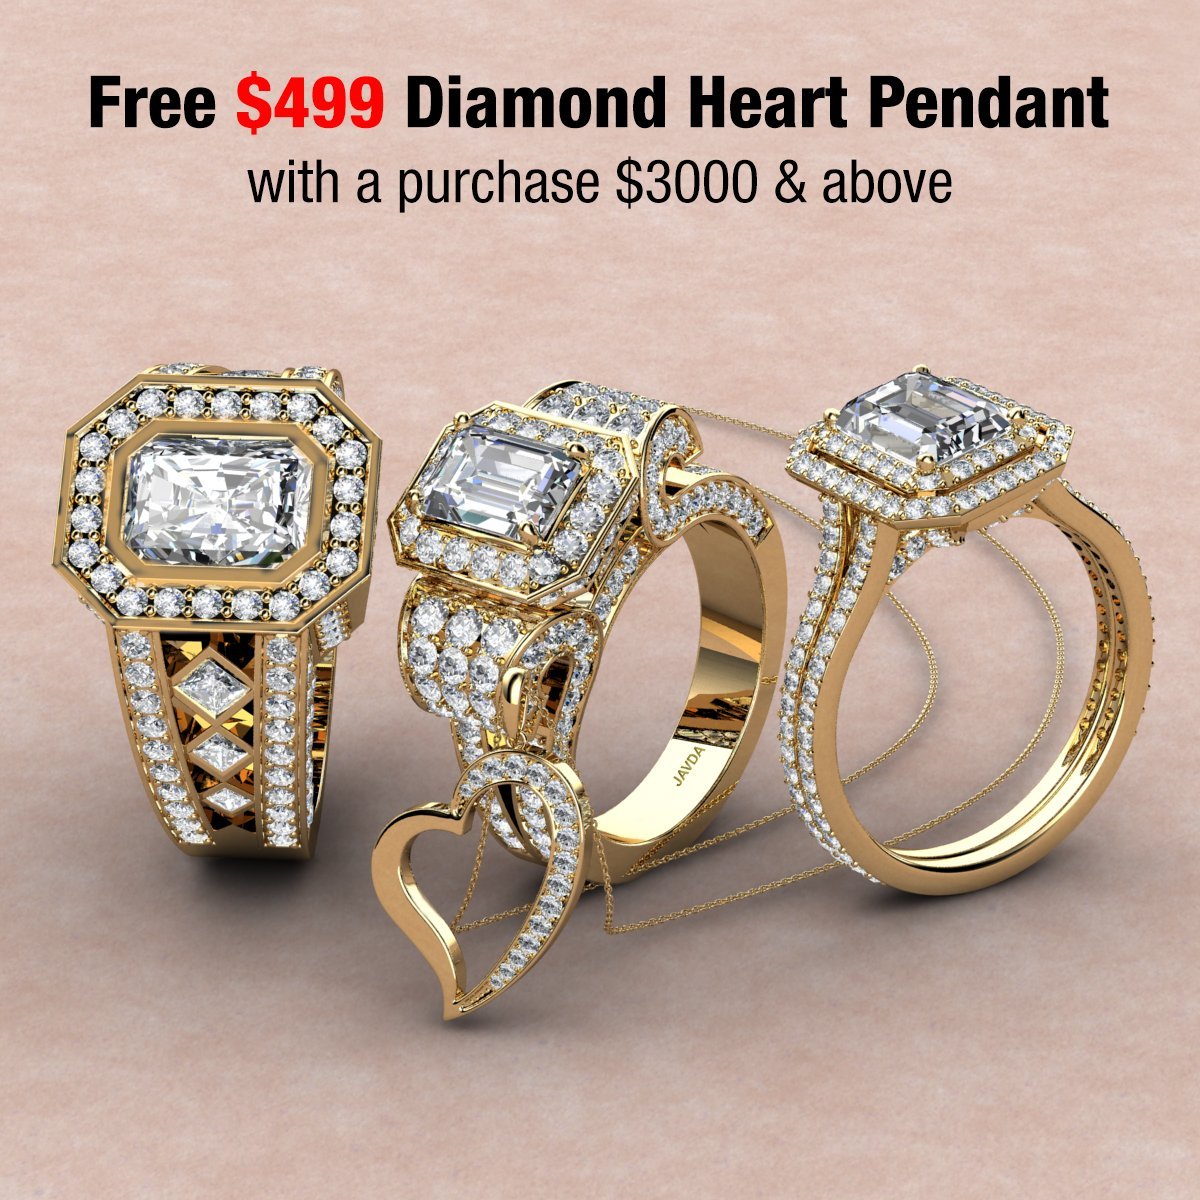 Javda Jewelry On Twitter Big Deals Limited Time Offer Free 499 Diamond Heart Pendant With Purchase Of 3000 And Above Also 36 Month Financing Available At Javda Visit Our Website On